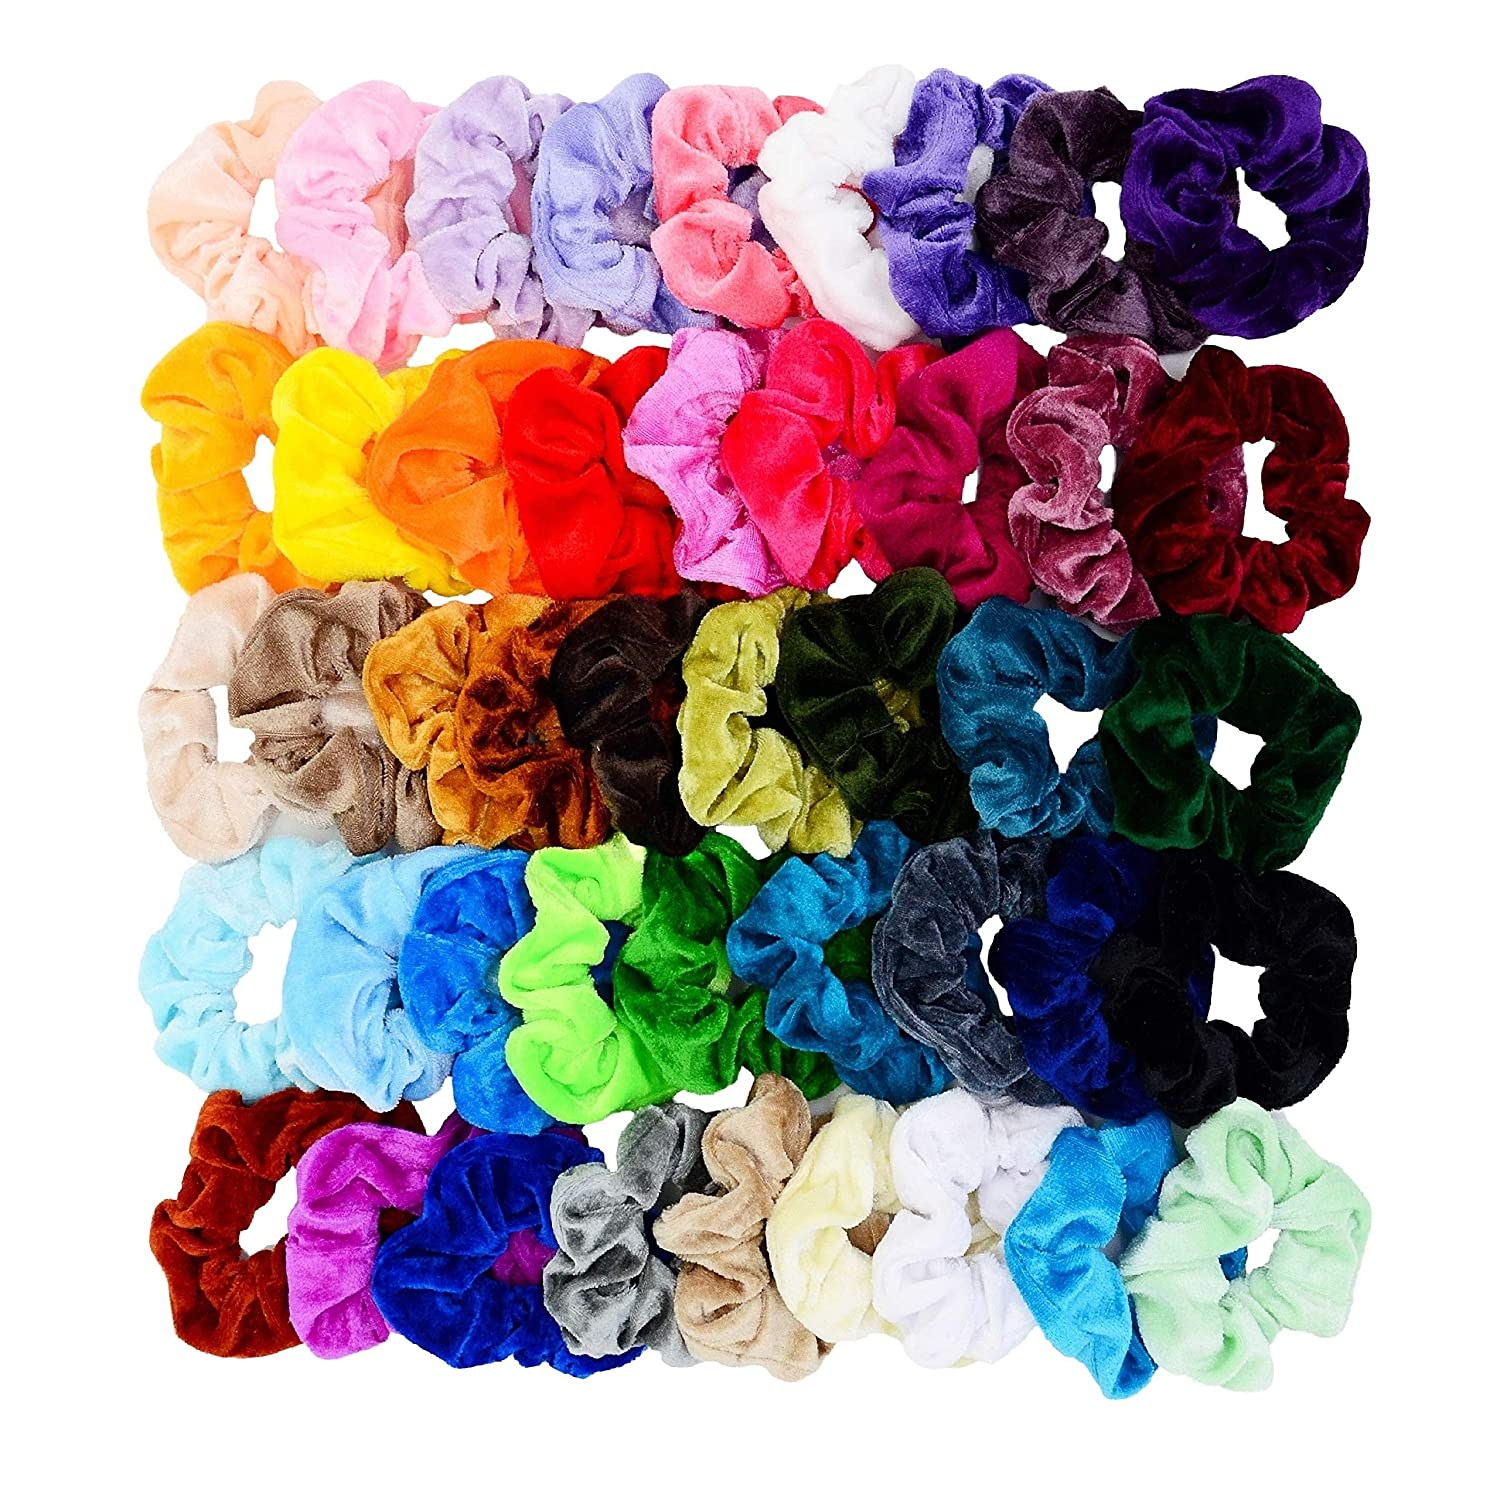 Chloven 45 Pcs Hair Scrunchies Velvet Elastics Hair Bands Scrunchy Hair Tie Ropes Scrunchie for Women Girls Hair Accessories Scrunchies - Great Gift for Holiday Seasons : Beauty